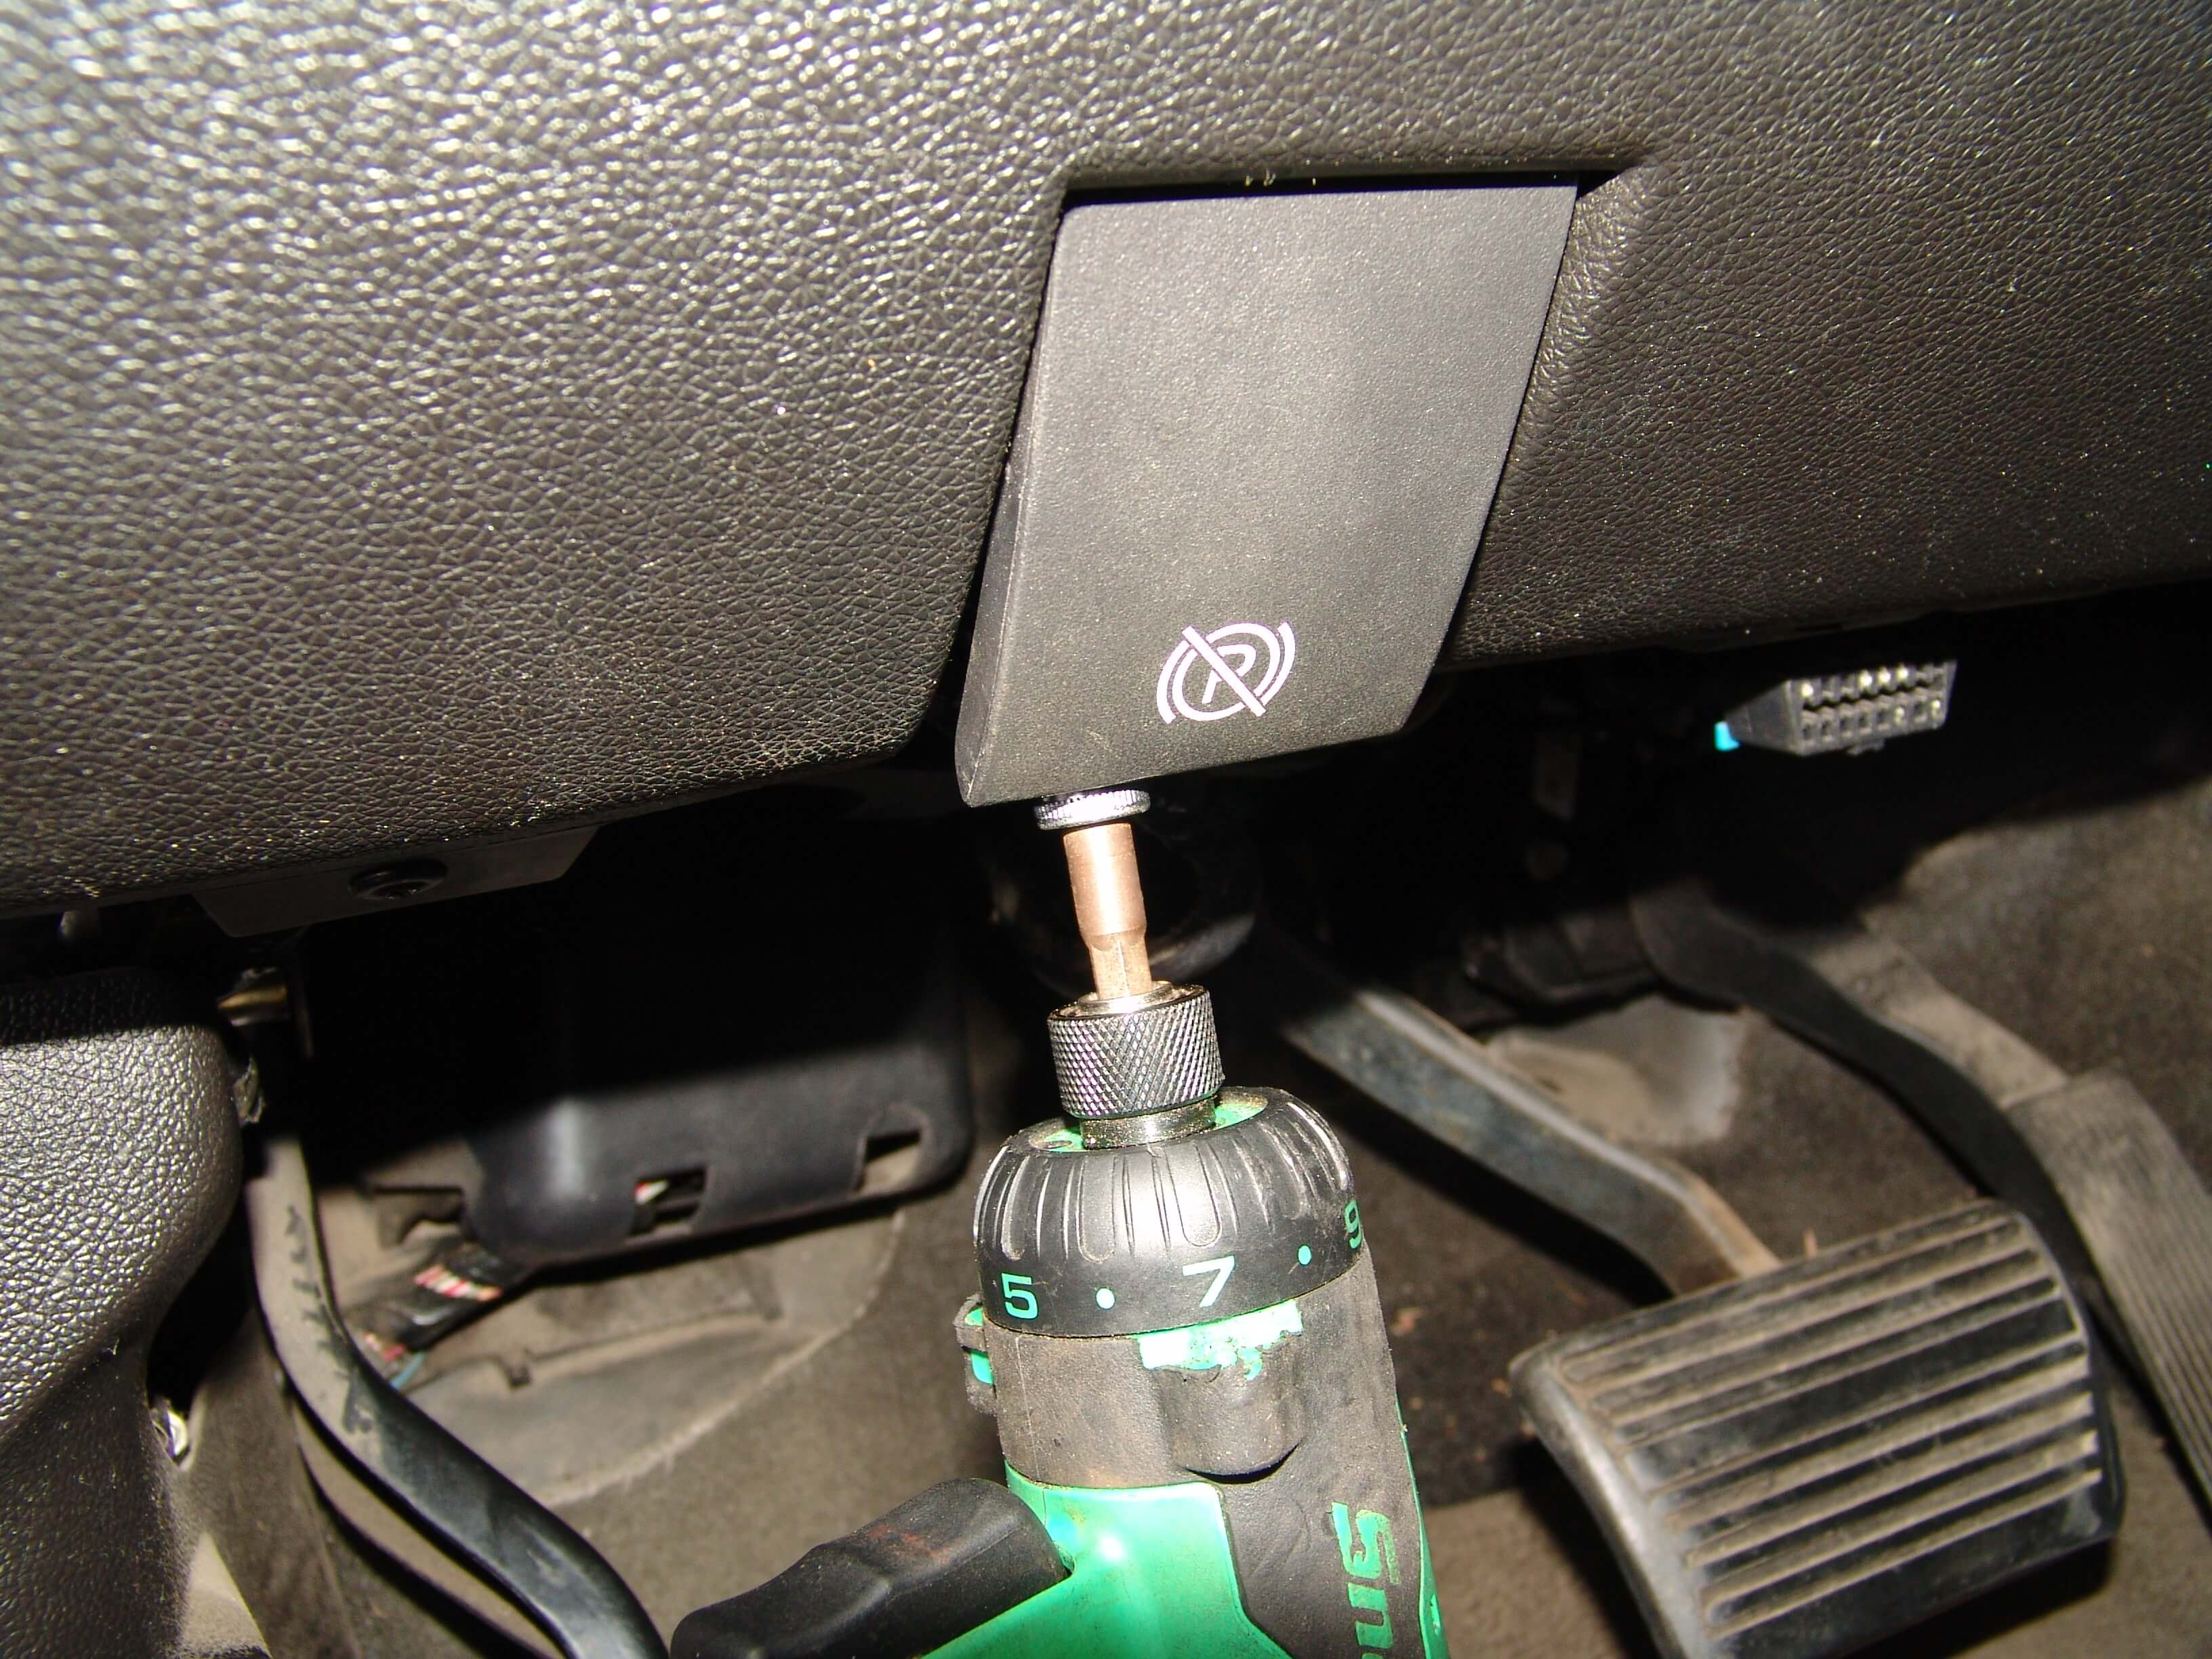 Sparkys Answers 2008 Gmc Sierra Denali Multiple Electrical Problems Fuse Box By Removing The Under Dash Panel On Drivers Side Of Truck There Is A 10 Mm Headed Bolt That Holds Parking Brake Release Handle In Place